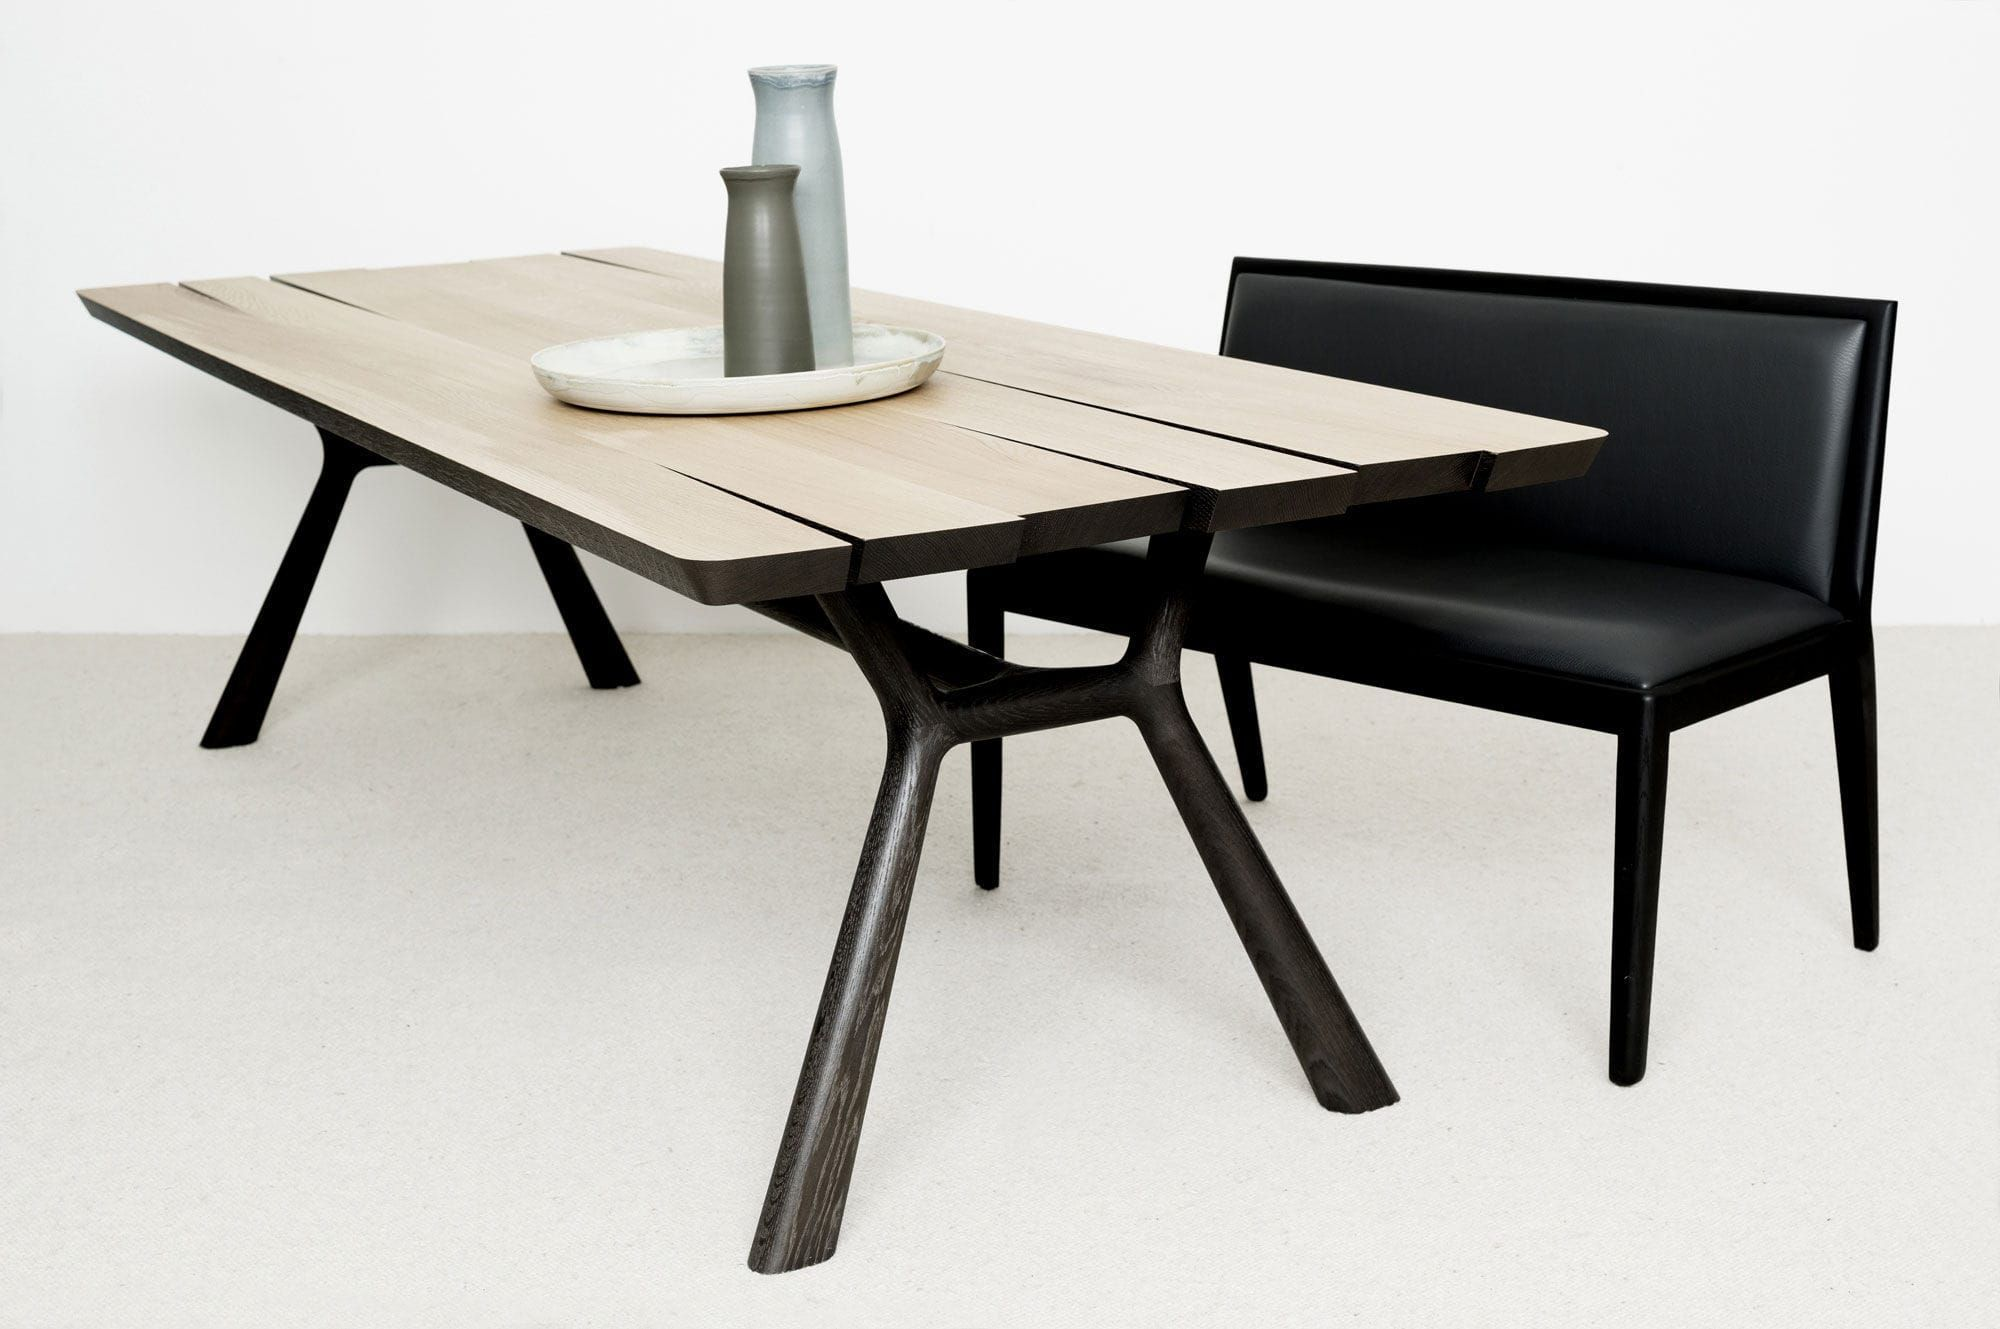 Ama Christophe Delcourt H H Dubai Furniture Dining Table